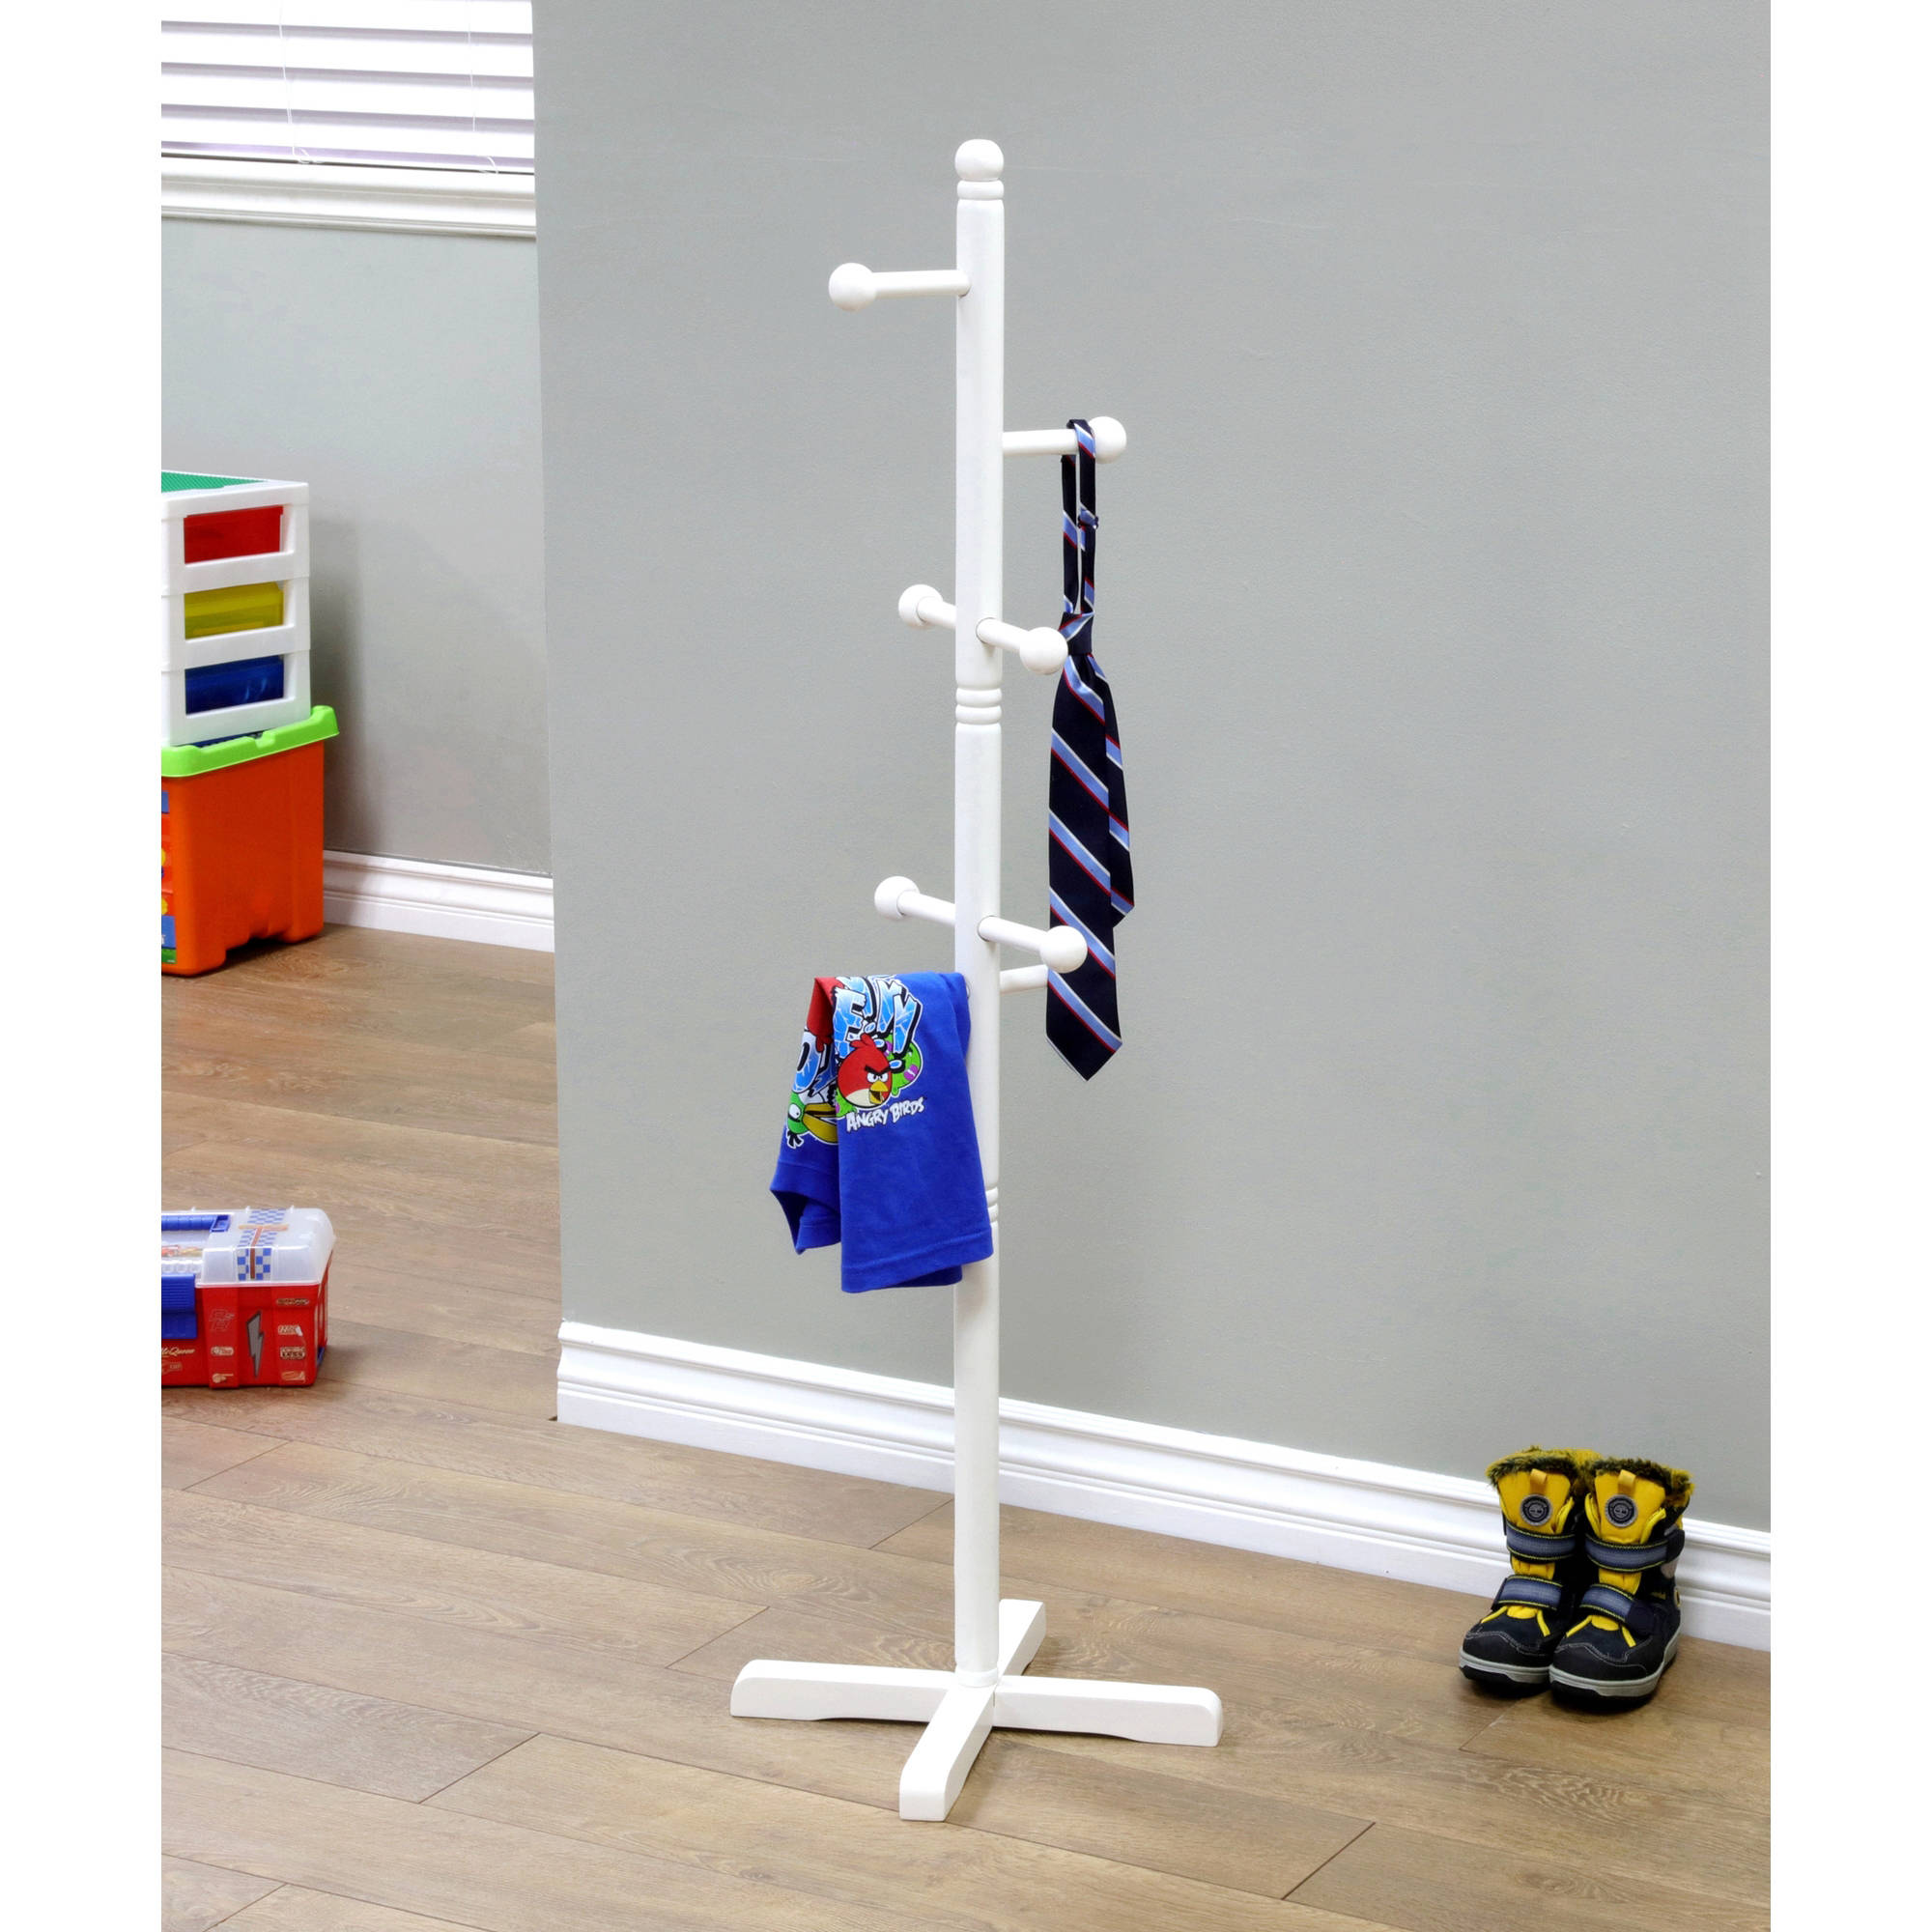 Home Craft Kid's Coat Rack, Multiple Colors by Mega Home